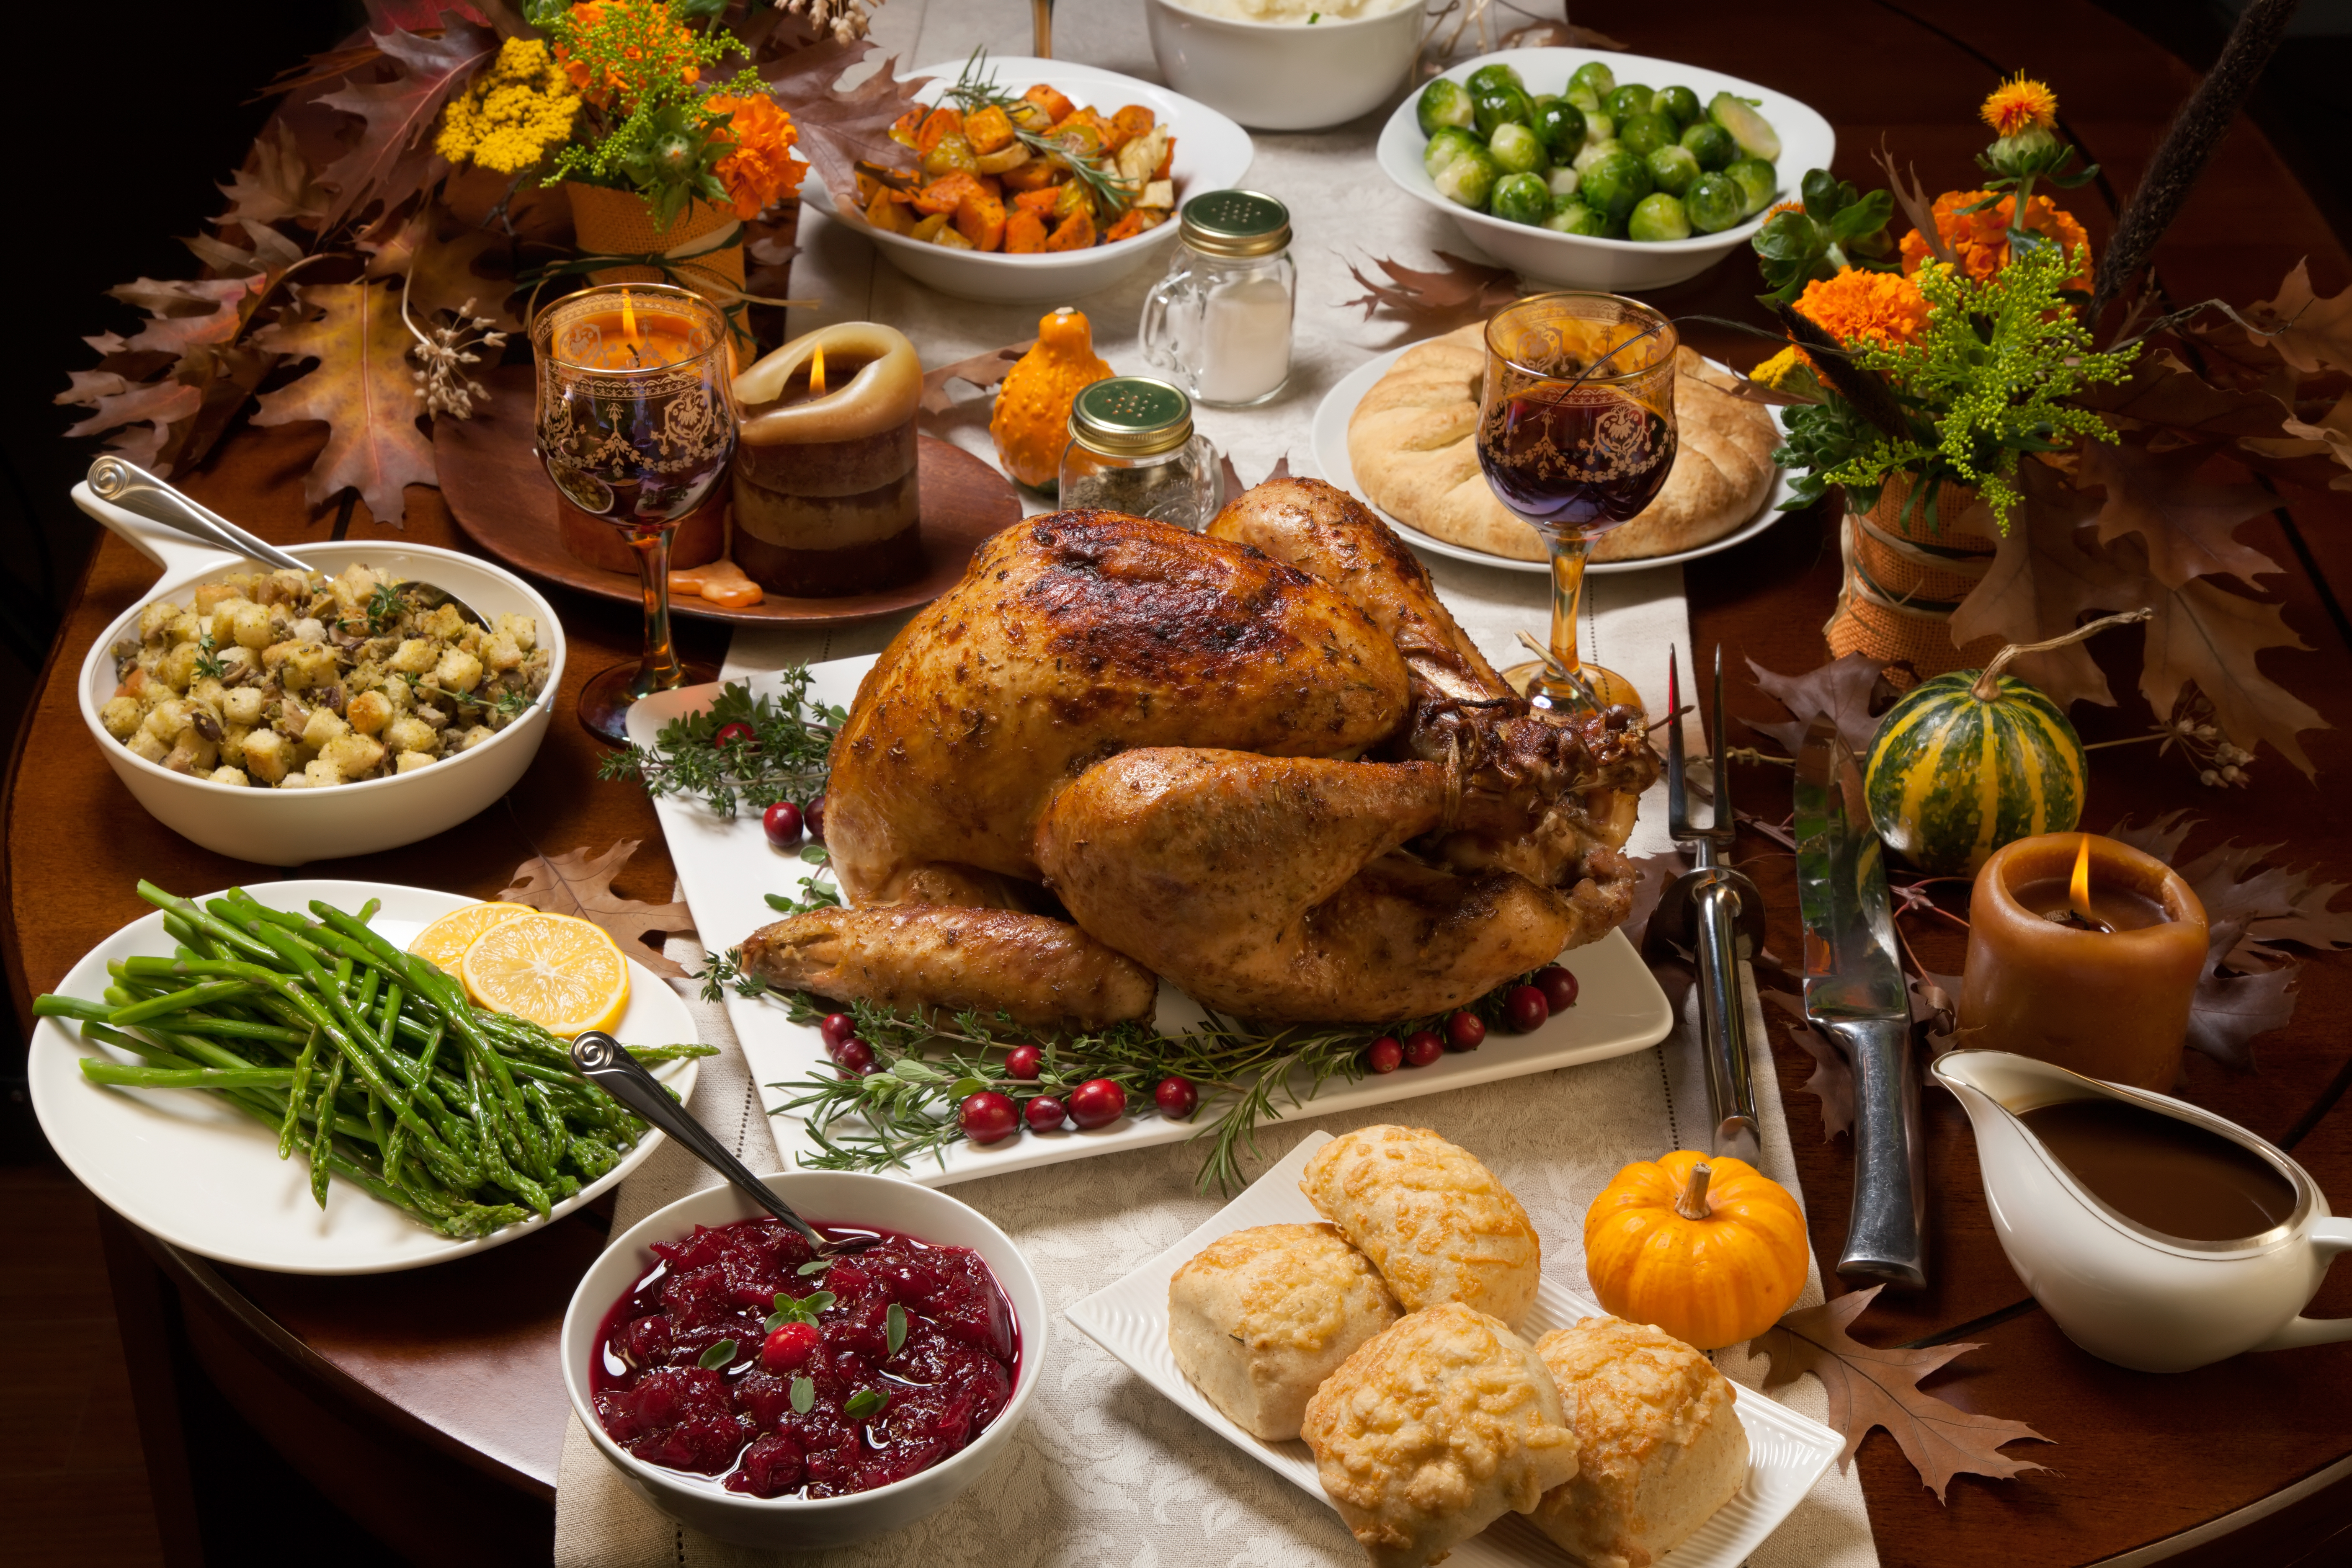 thanksgiving food pictures - HD1200×800